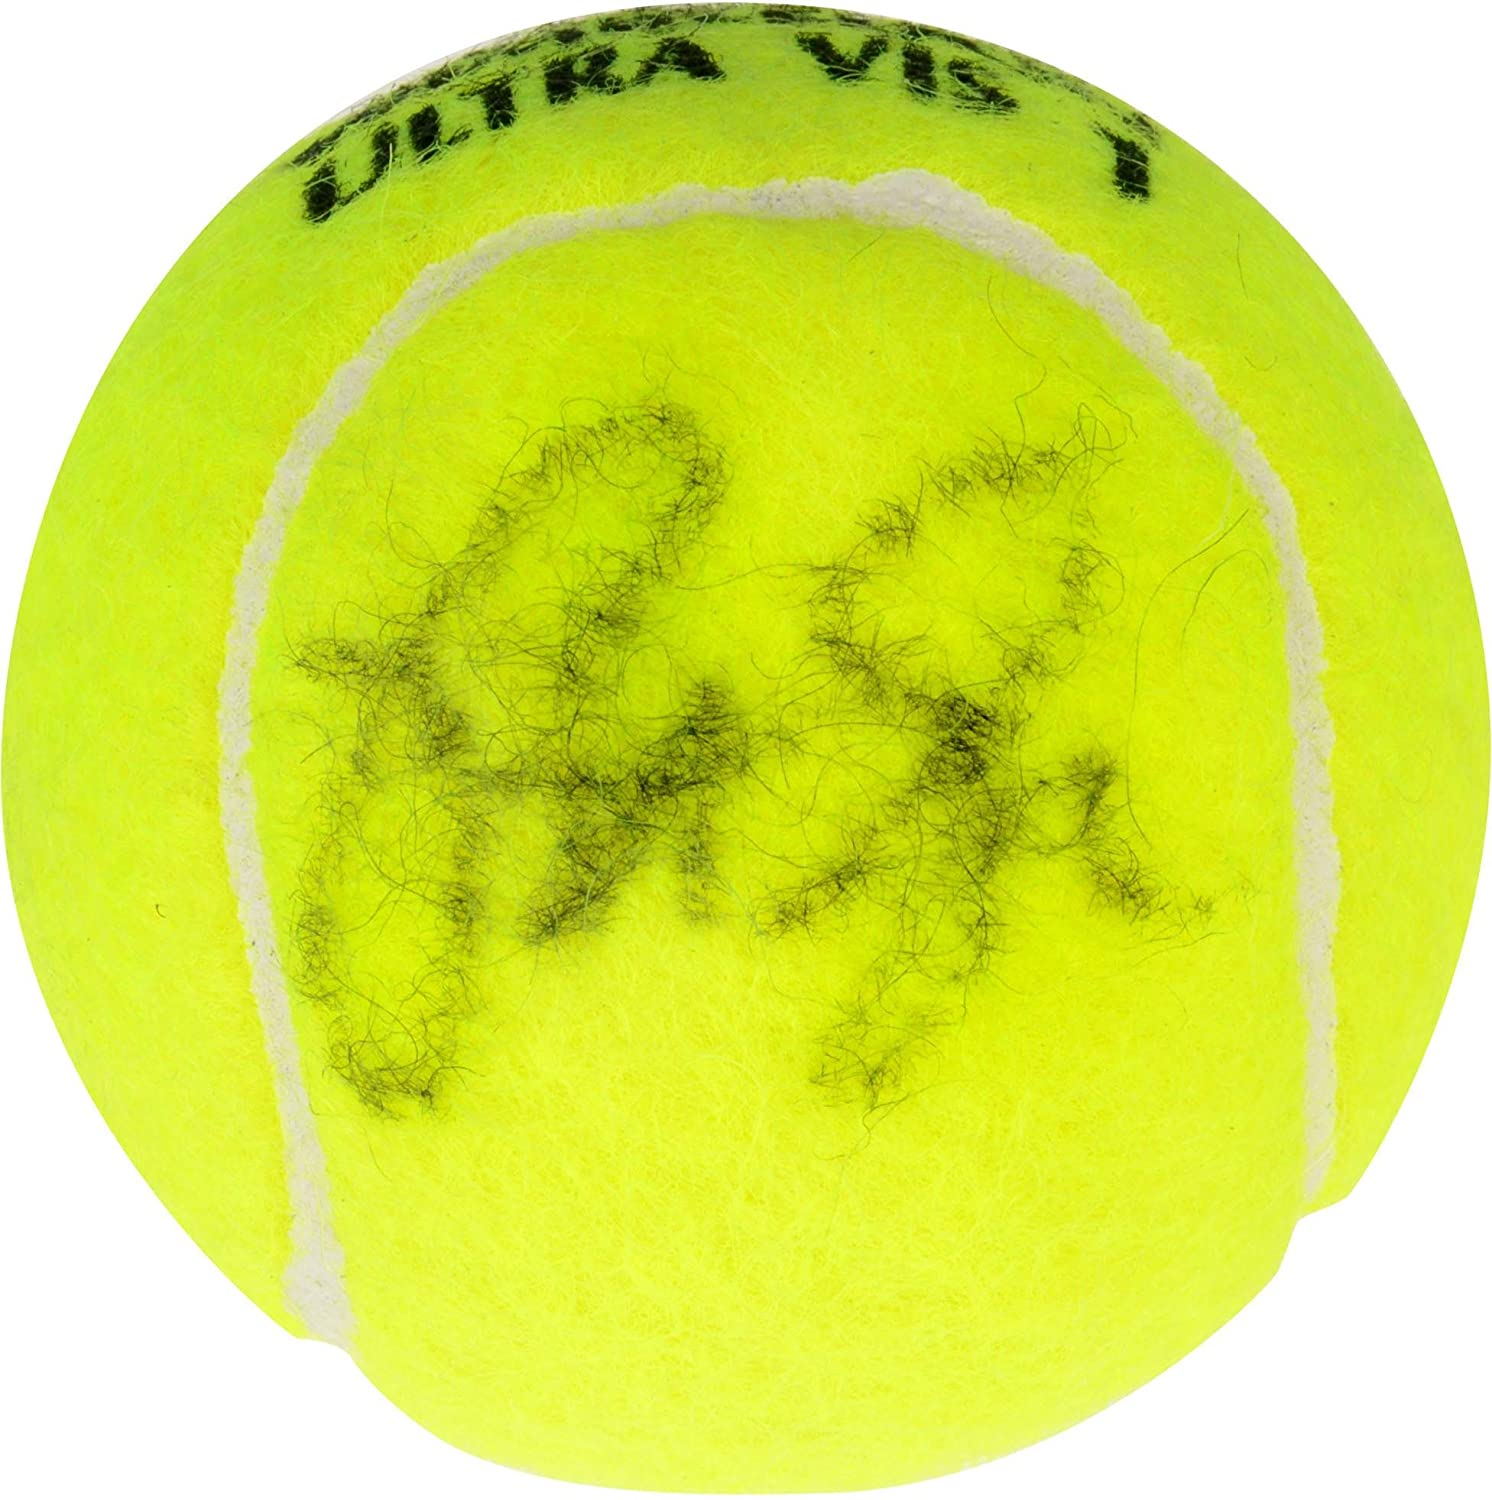 Pete Sampras Autographed Slazenger Wimbledon Tennis Ball - Fanatics Authentic Certified - Autographed Tennis Balls